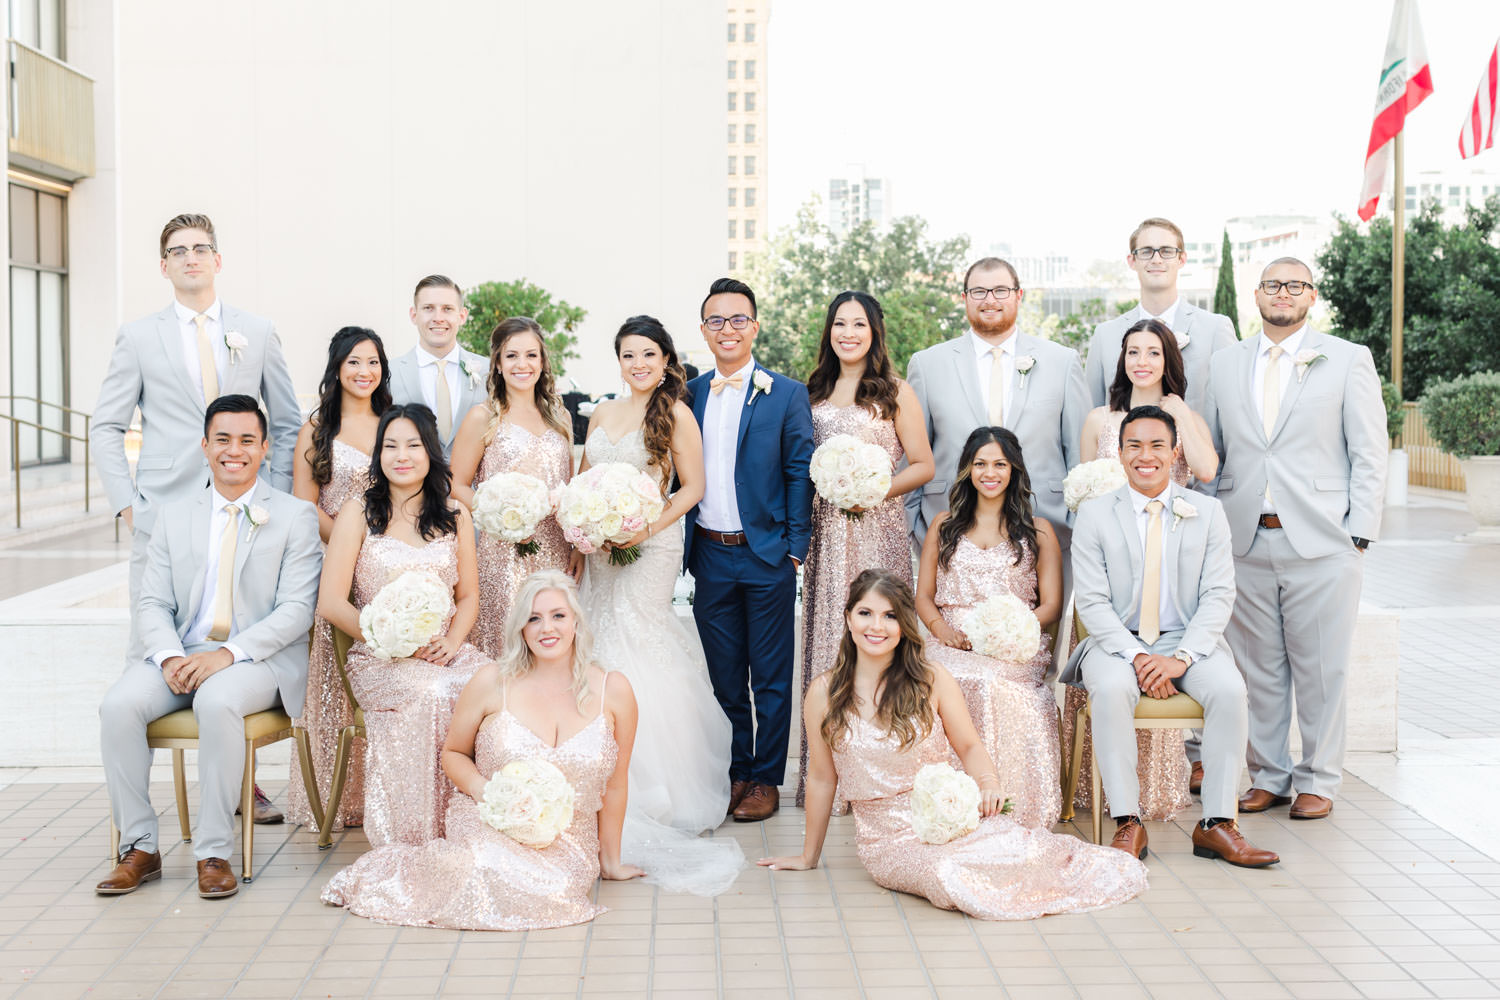 Bridal party portrait with chairs, Westgate Hotel Wedding in Downtown San Diego, Cavin ELizabeth Photography